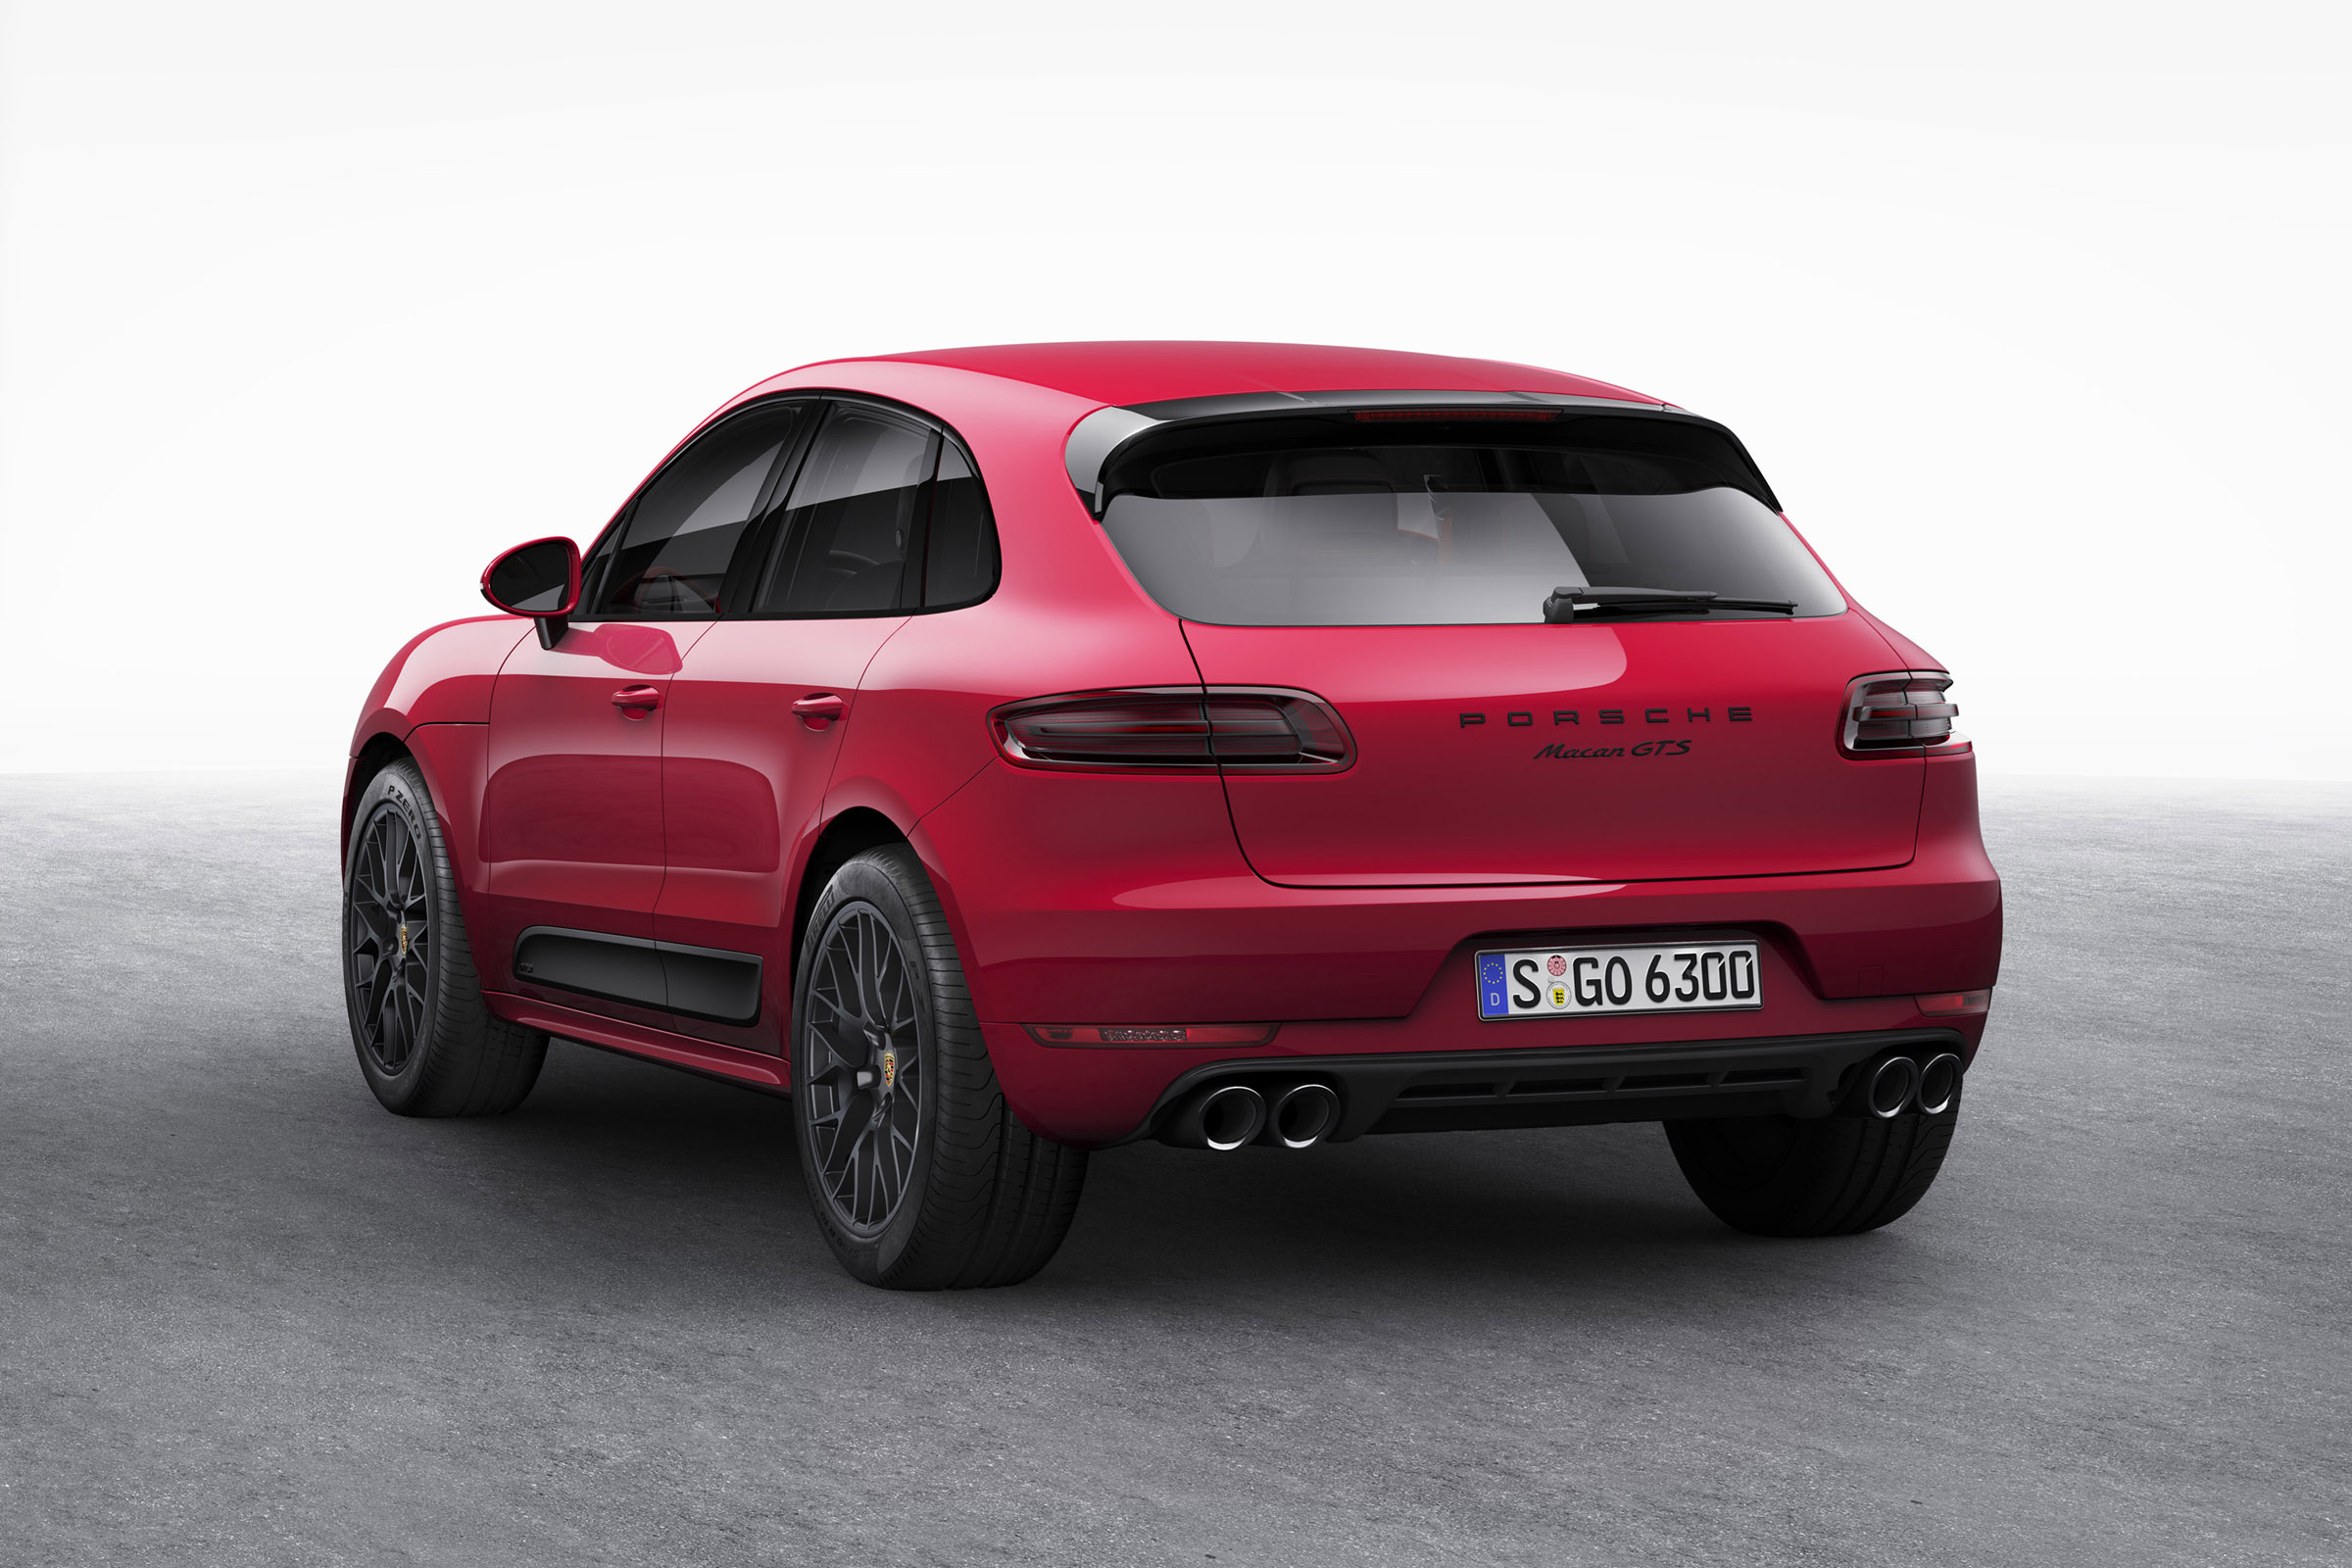 porsche macan gts the thoroughbred sports car among suvs. Black Bedroom Furniture Sets. Home Design Ideas